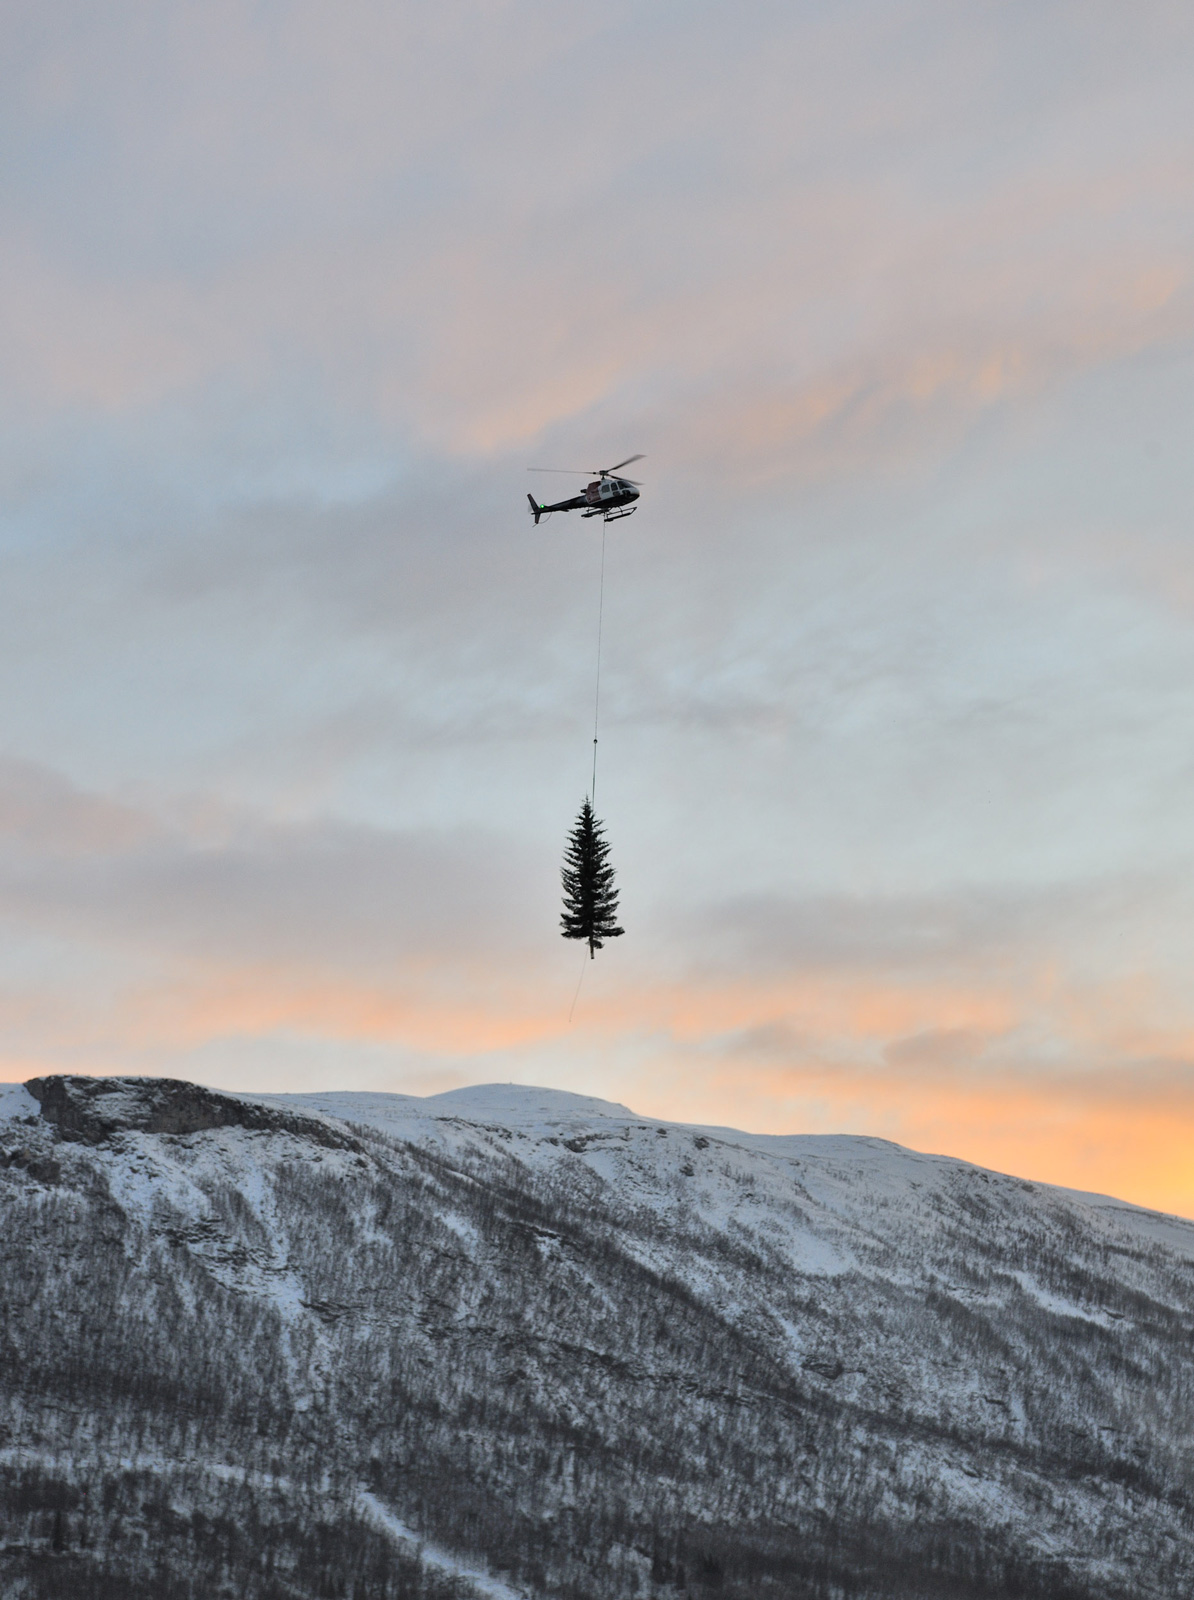 The Christmas tree is delivered by helicopter to Tromso, Norway.